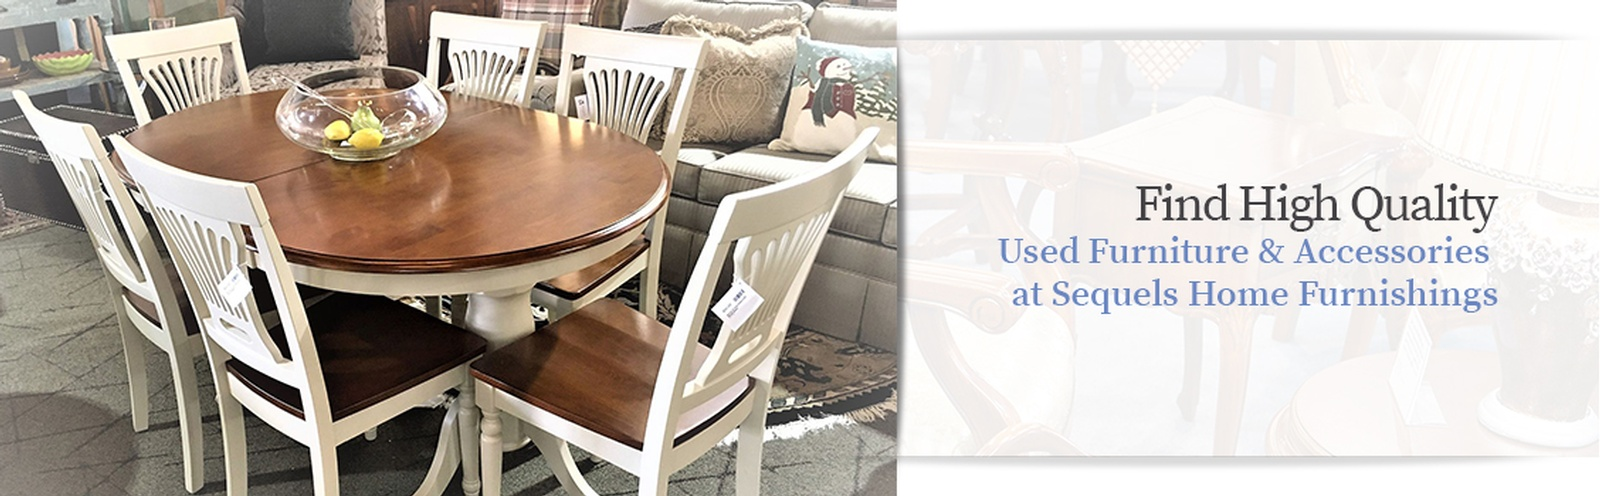 Find high quality used Furniture & Accessories at Sequels Home Furnishings New York